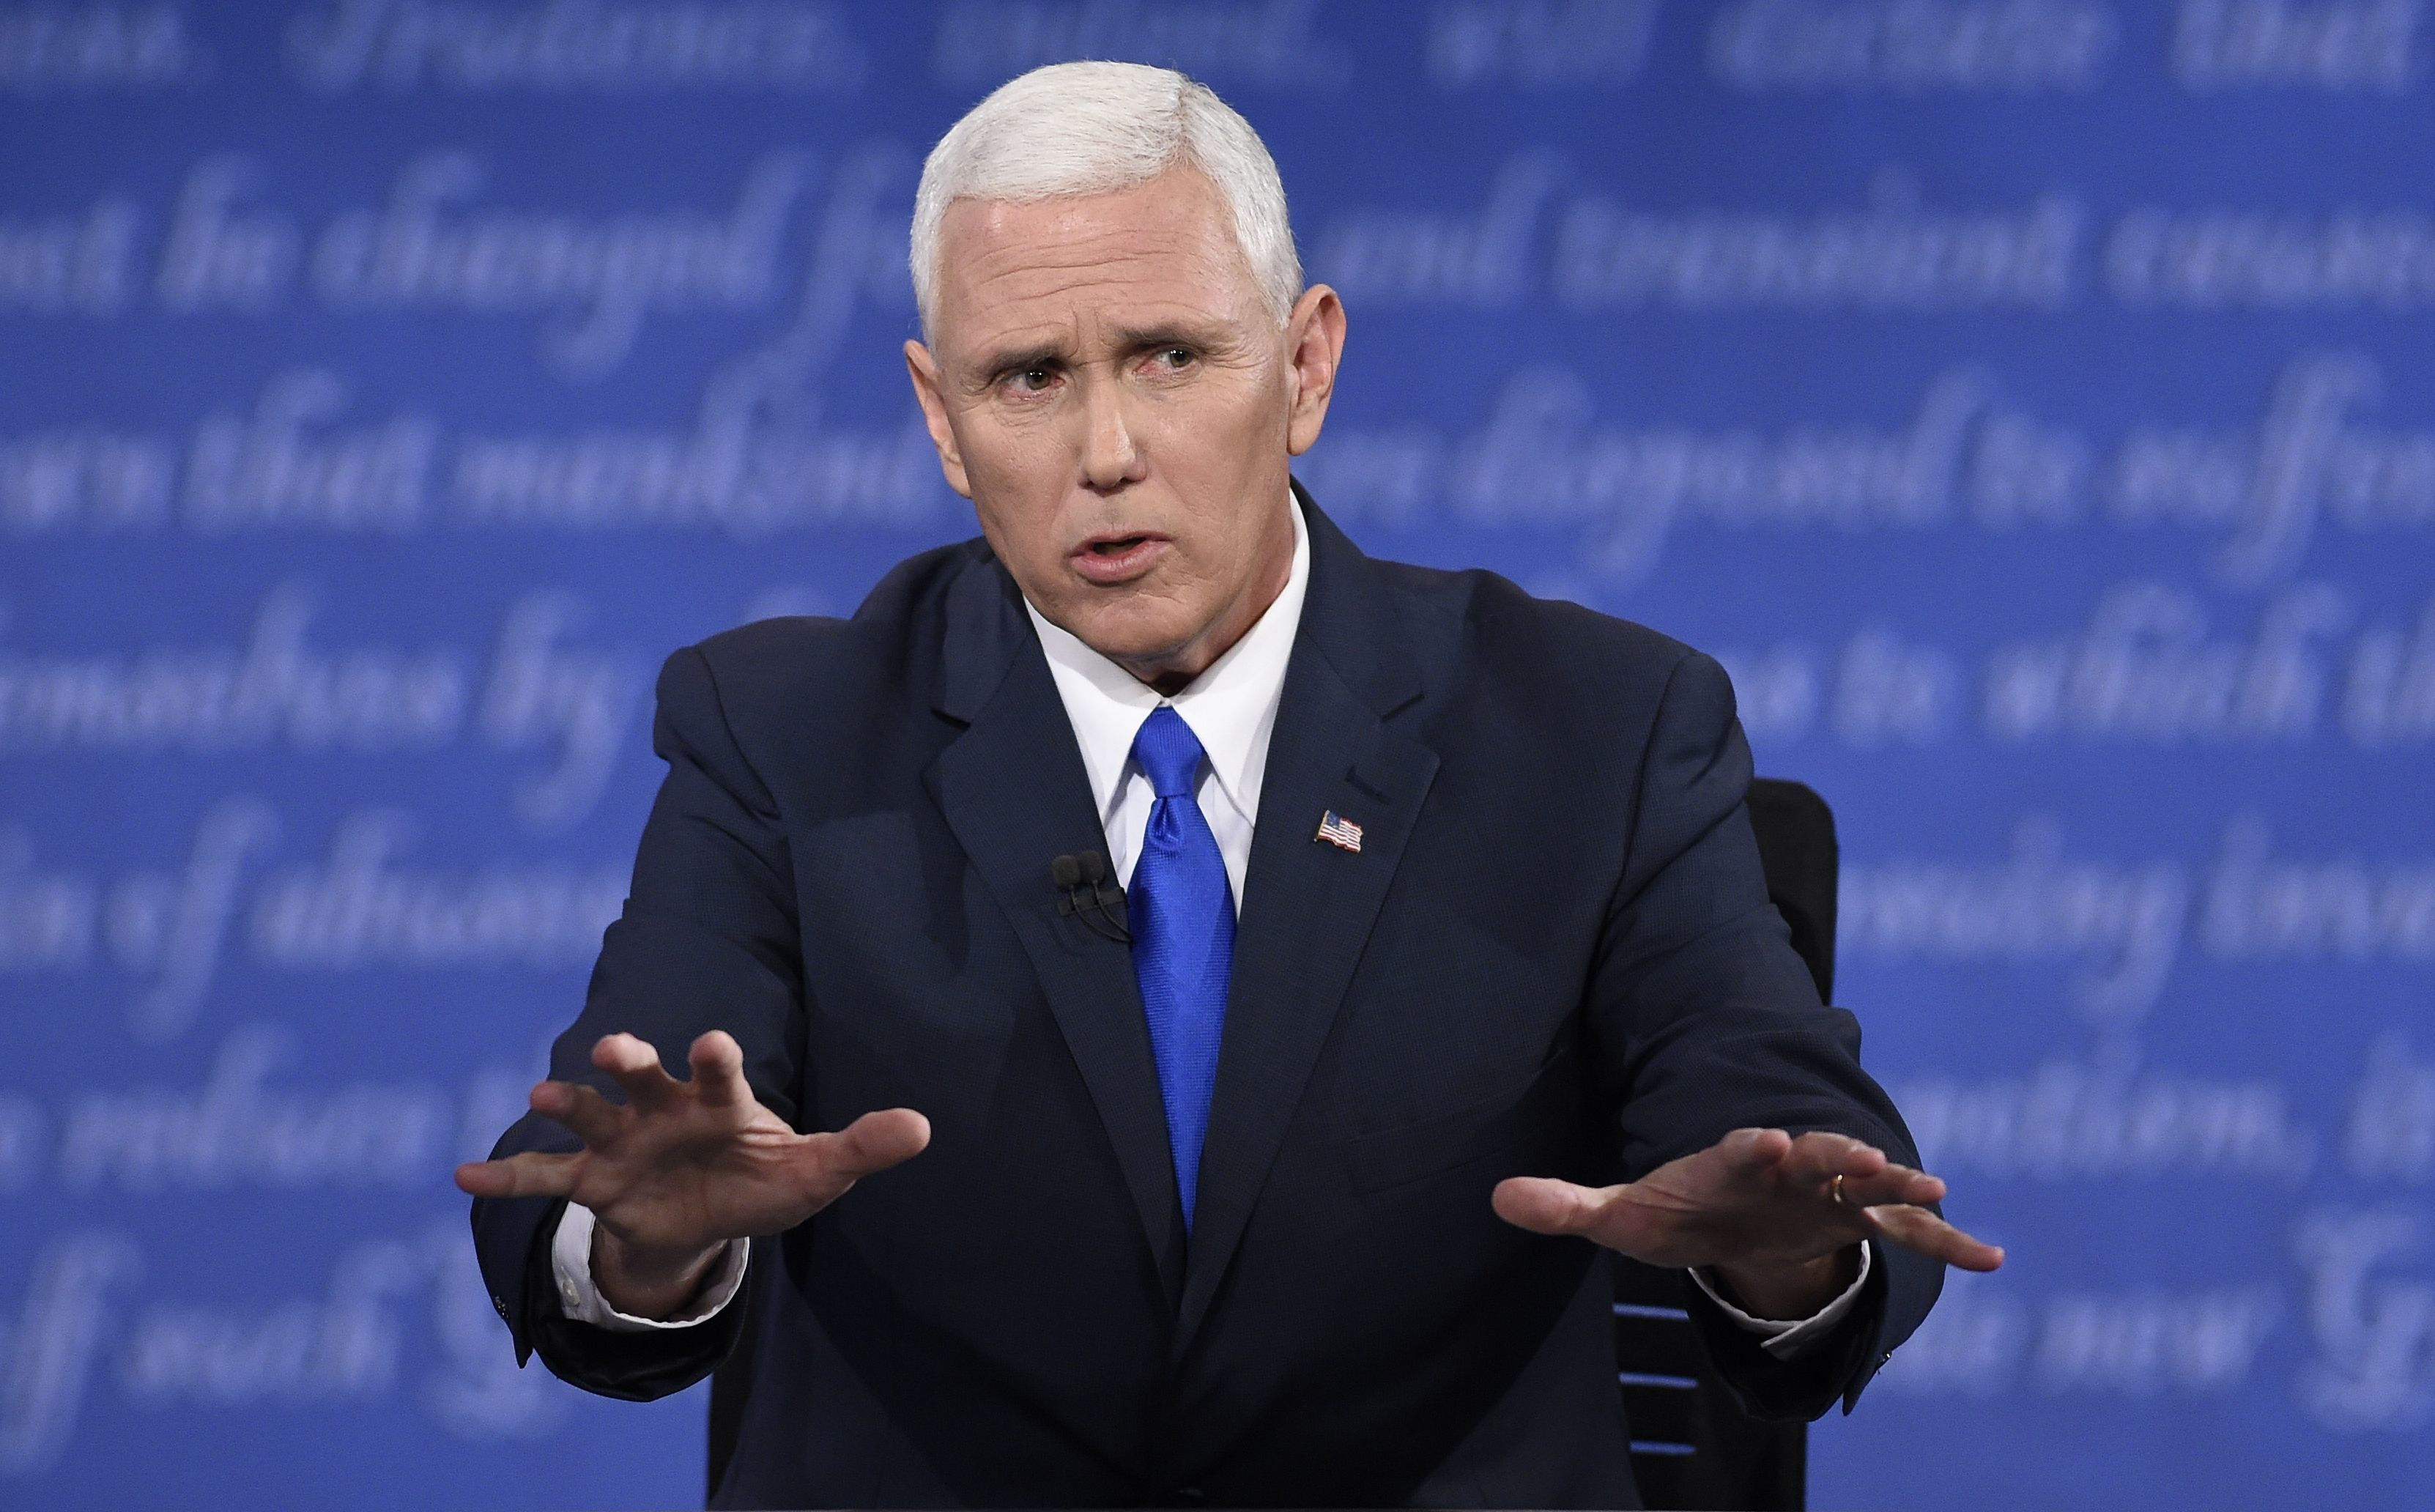 Republican vice presidential candidate Mike Pence speaks during the US vice presidential debate at Longwood University in Farmville, Virginia on October 4, 2016.    / AFP / SAUL LOEB        (Photo credit should read SAUL LOEB/AFP/Getty Images)